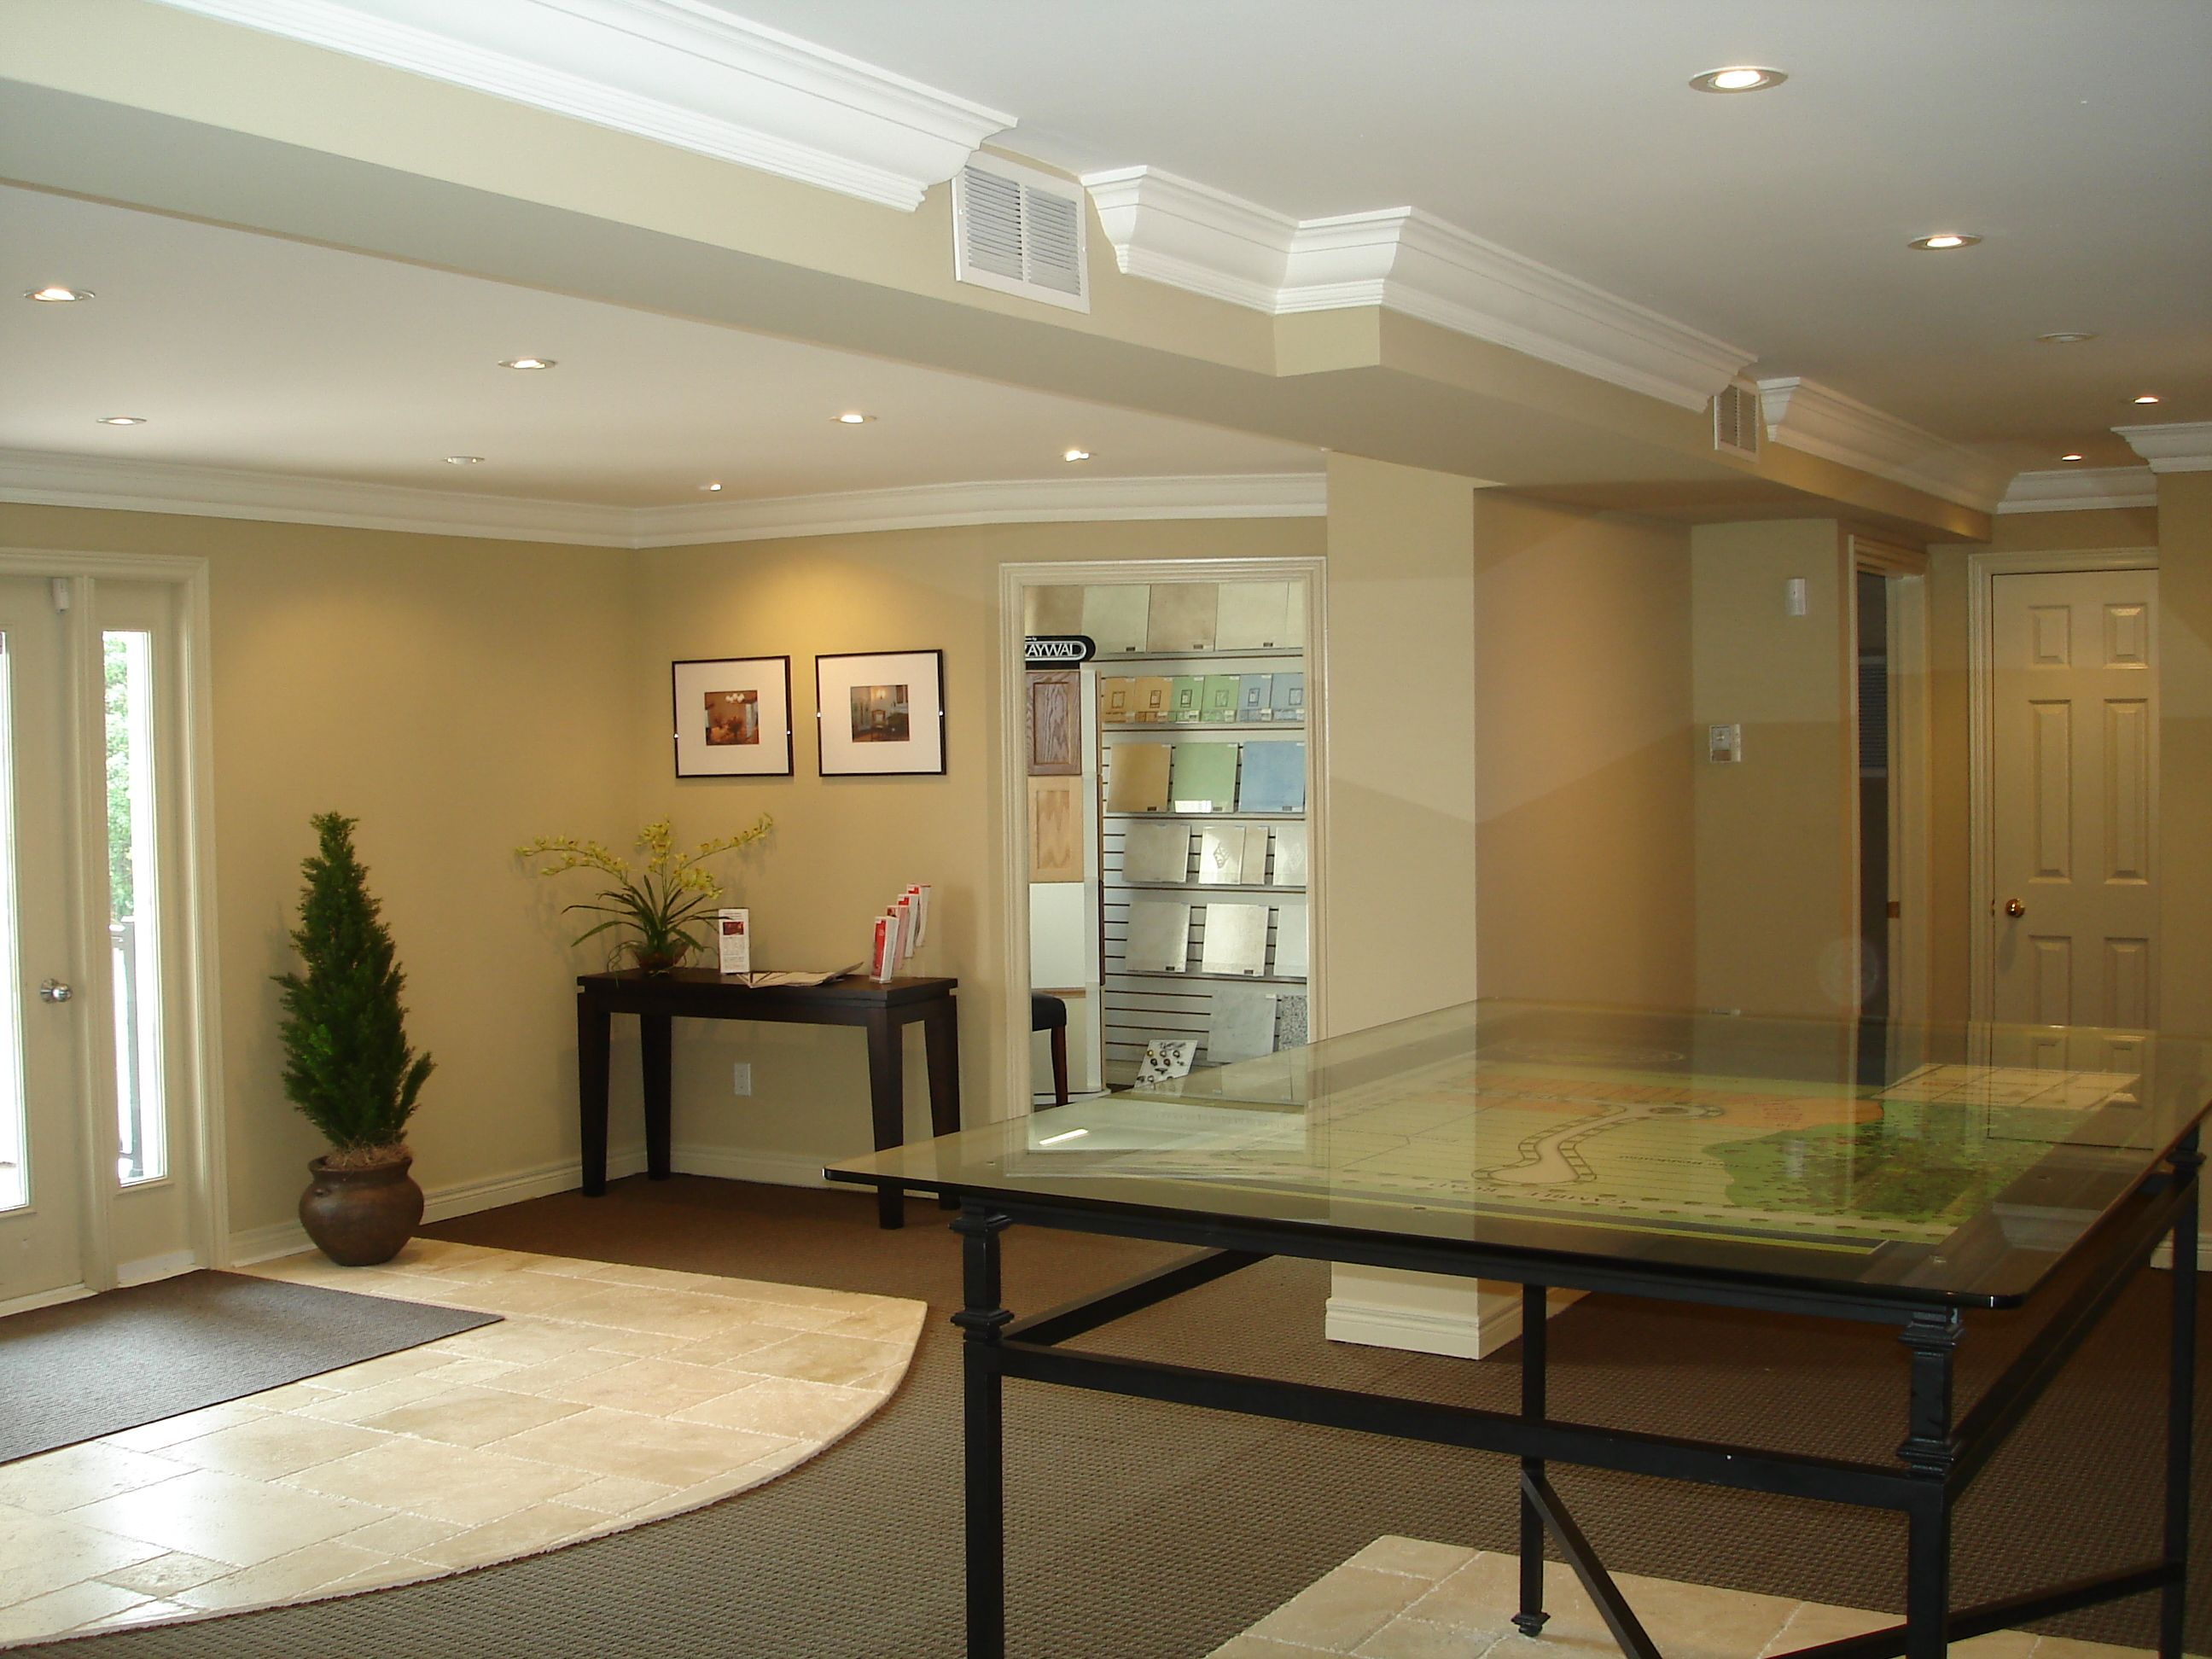 Home Builder Sales Office. | OUR WORK - Commercial Design ...